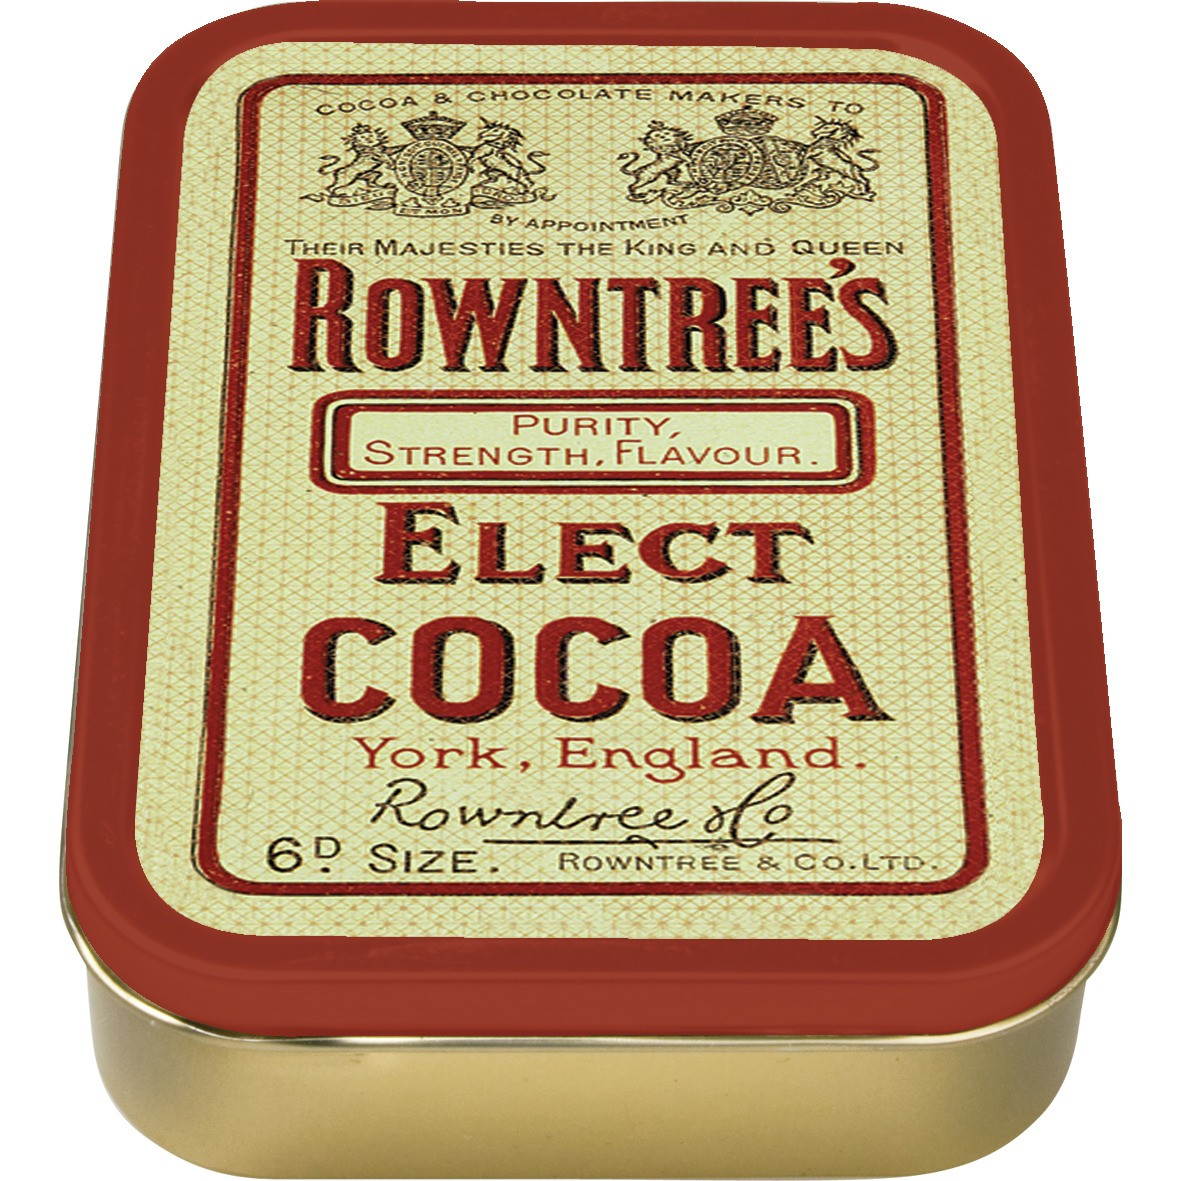 NEW 2oz ROWNTREES COCOA TOBACCO COLLECTORS TIN ROLLING VINTAGE CIGARETTE SMOKING